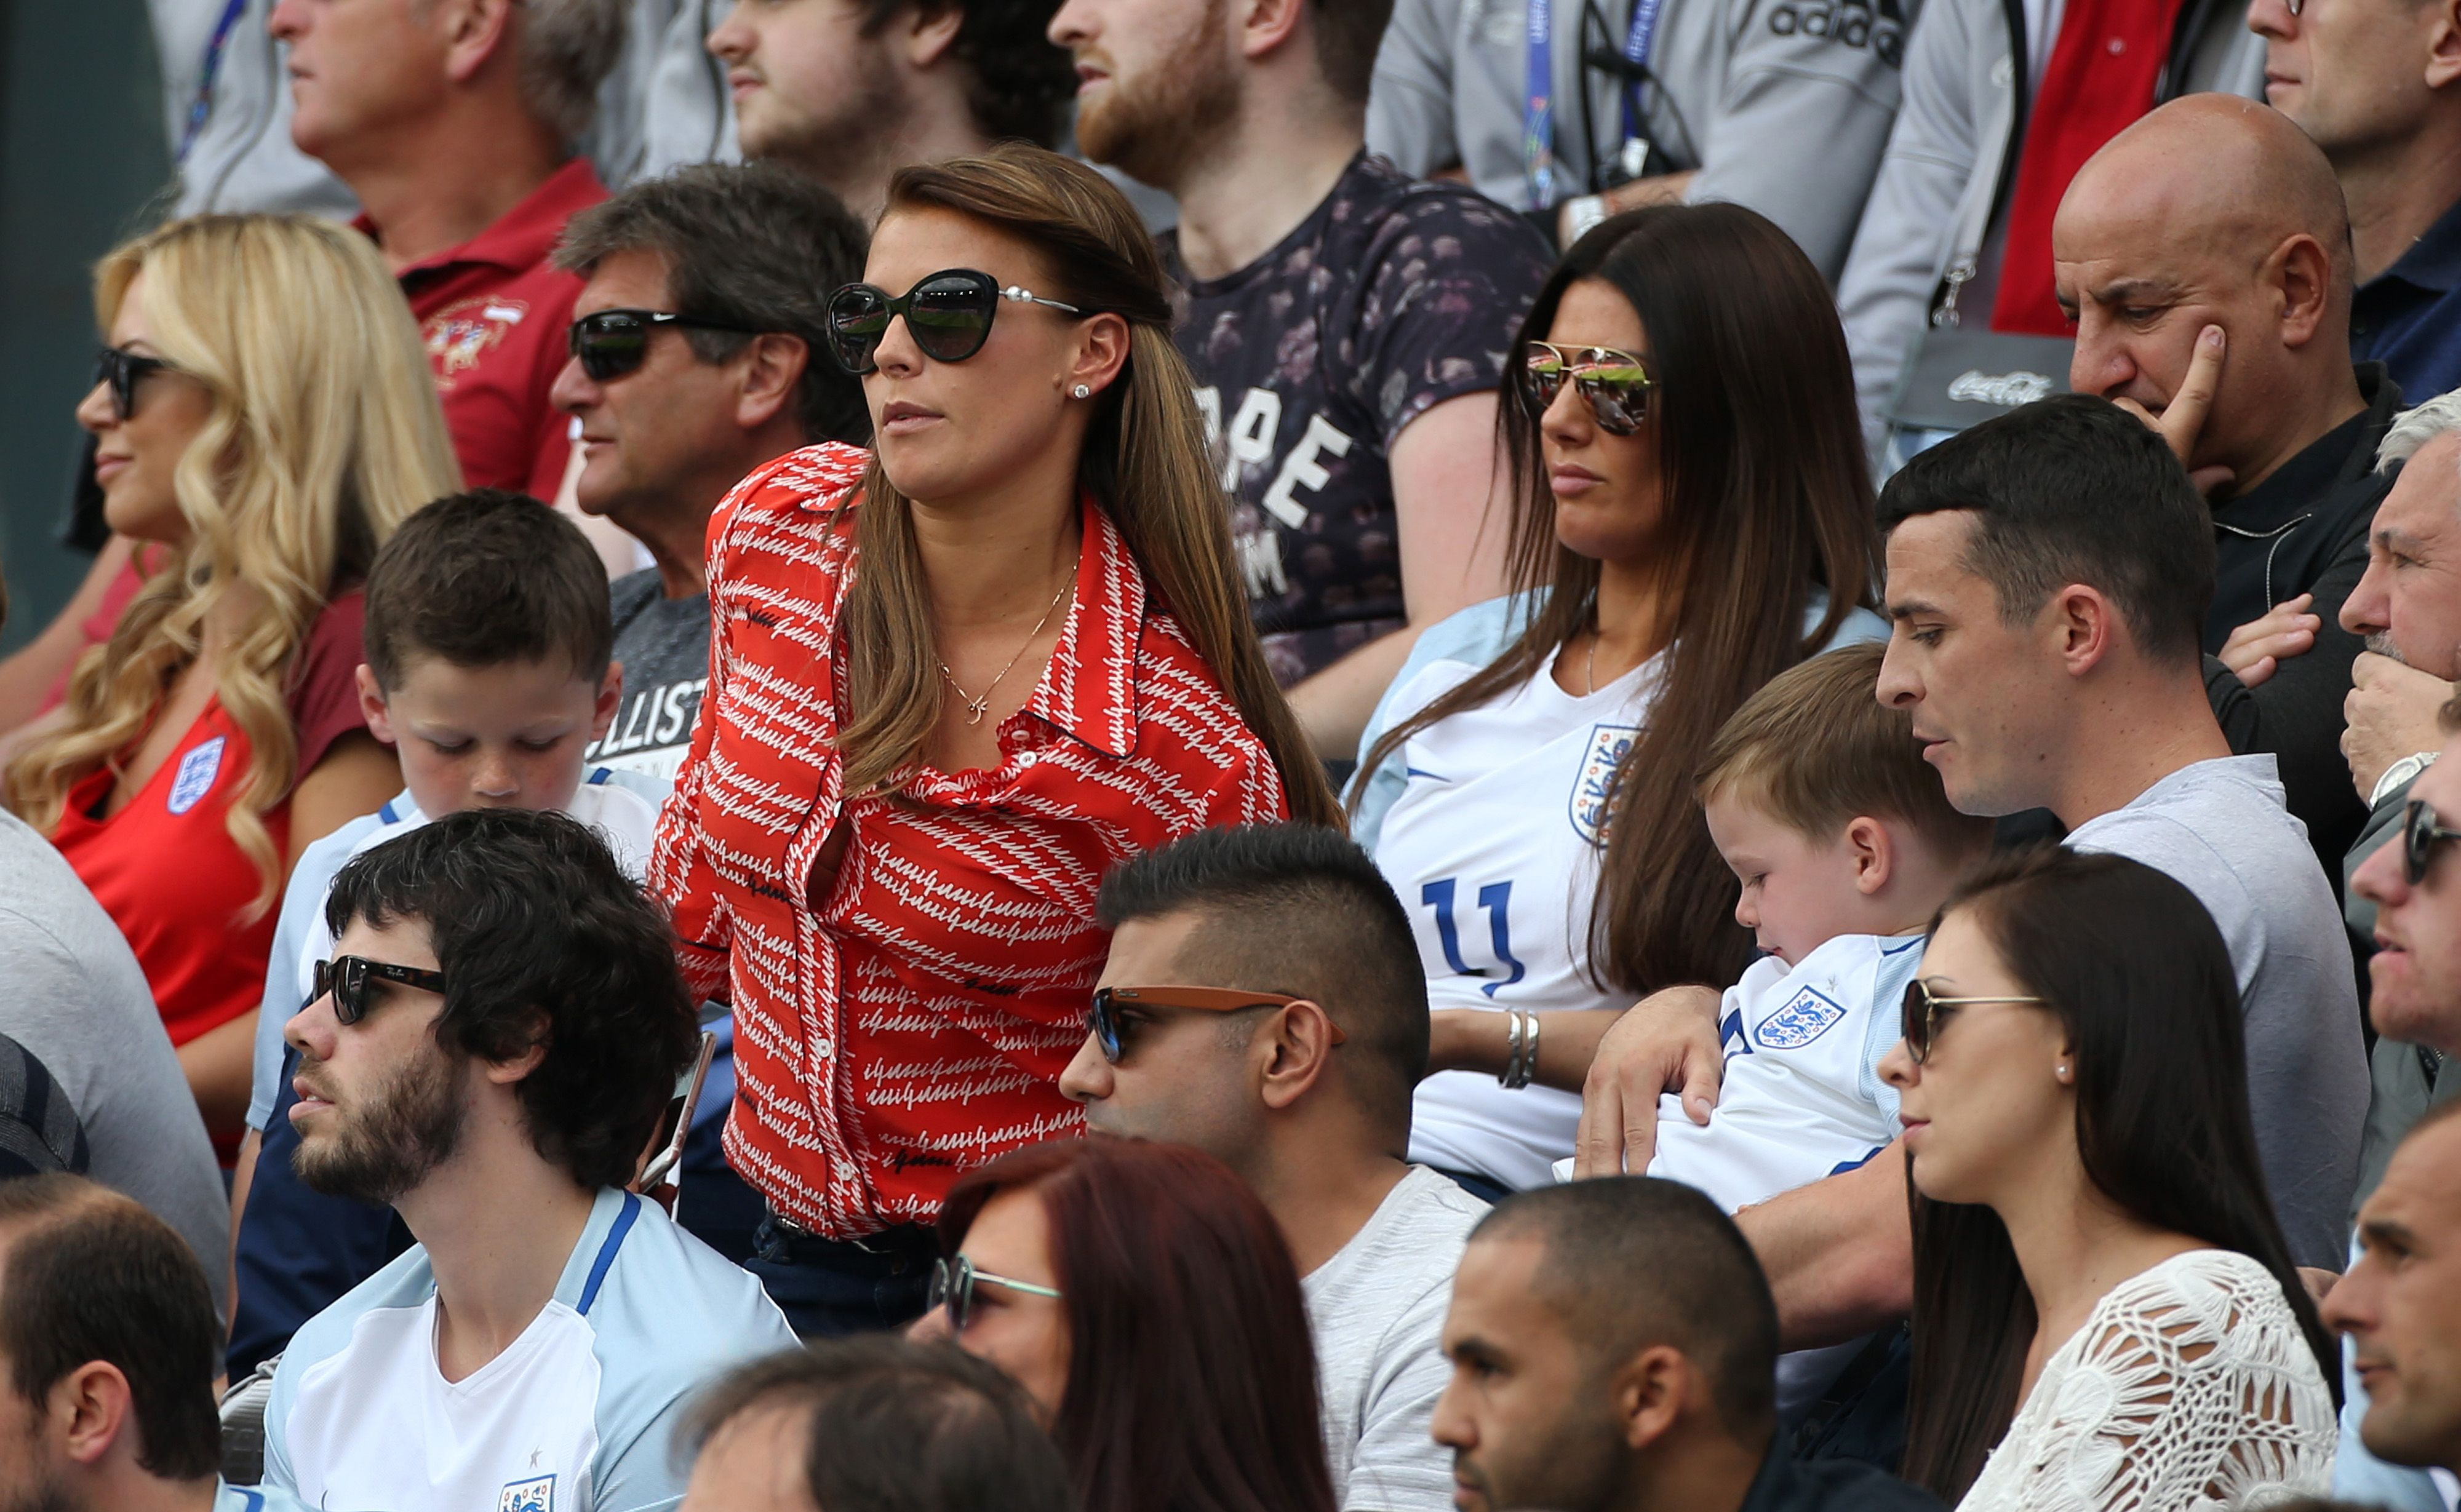 Footballers' Wives writer teases a new series following Coleen Rooney's feud with Rebekah Vardy